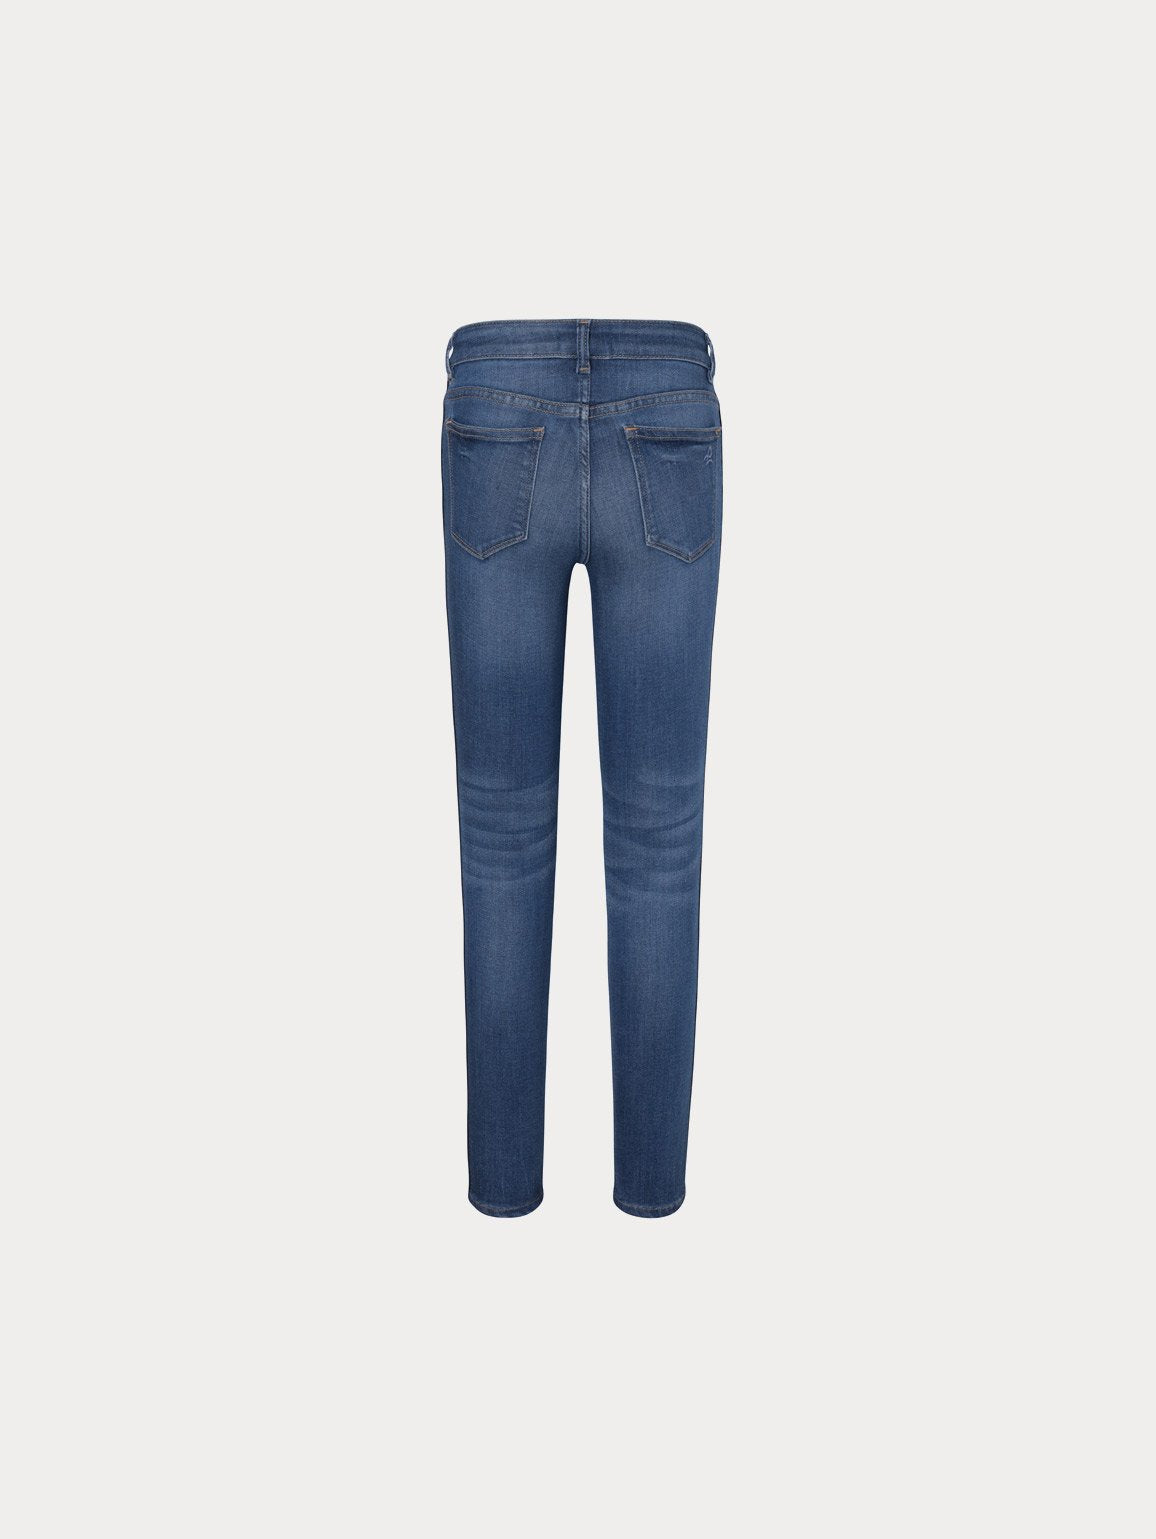 Chloe Toddler Skinny | Moody Blue - DL1961